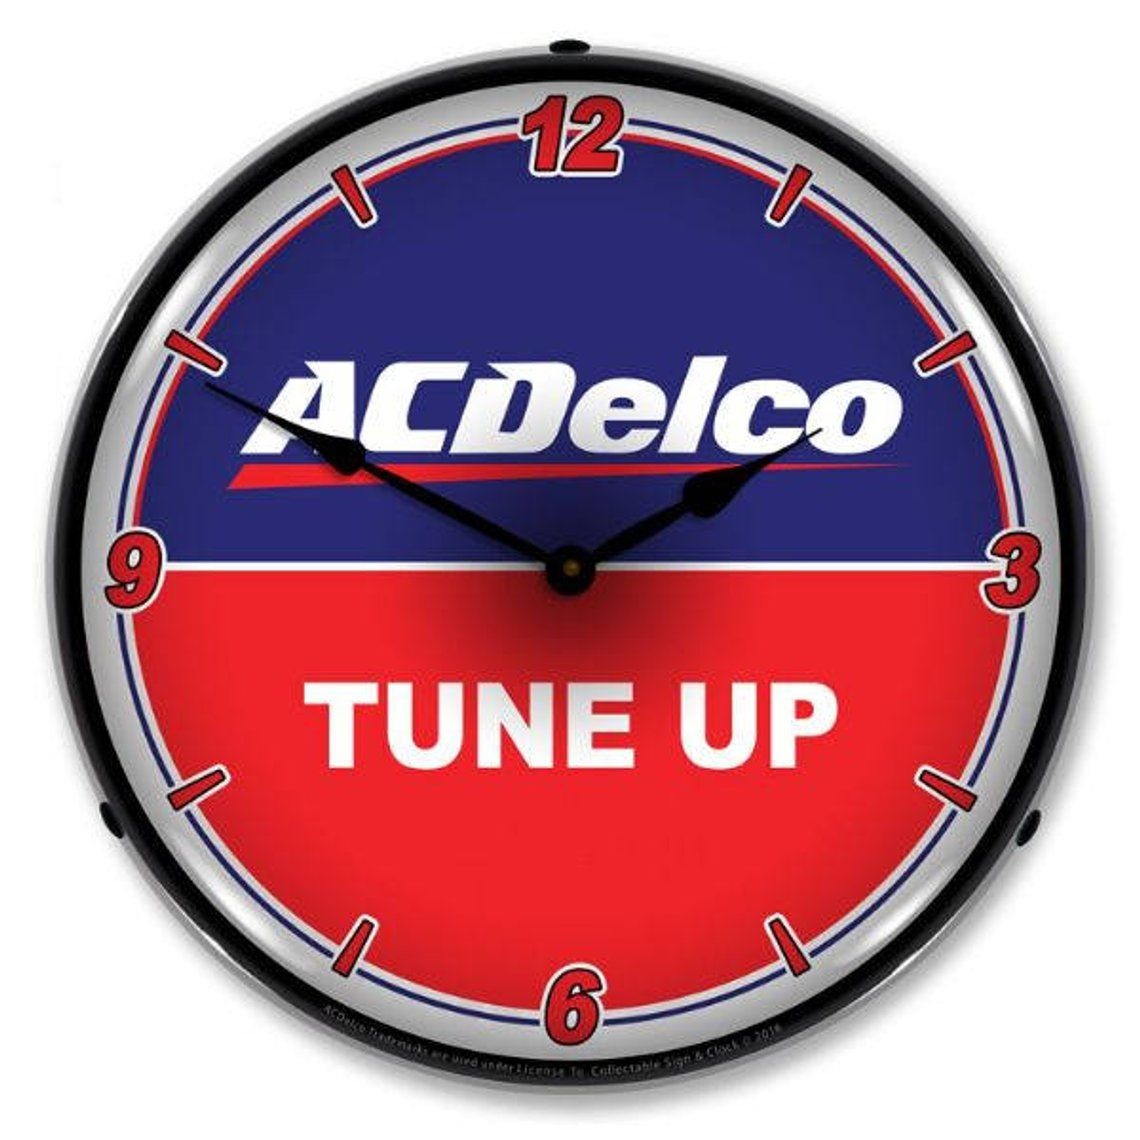 Antique Style Acdelco Tune Up Led Lighted Backlit Clock With Images Wall Clock Light Wall Clock Clock